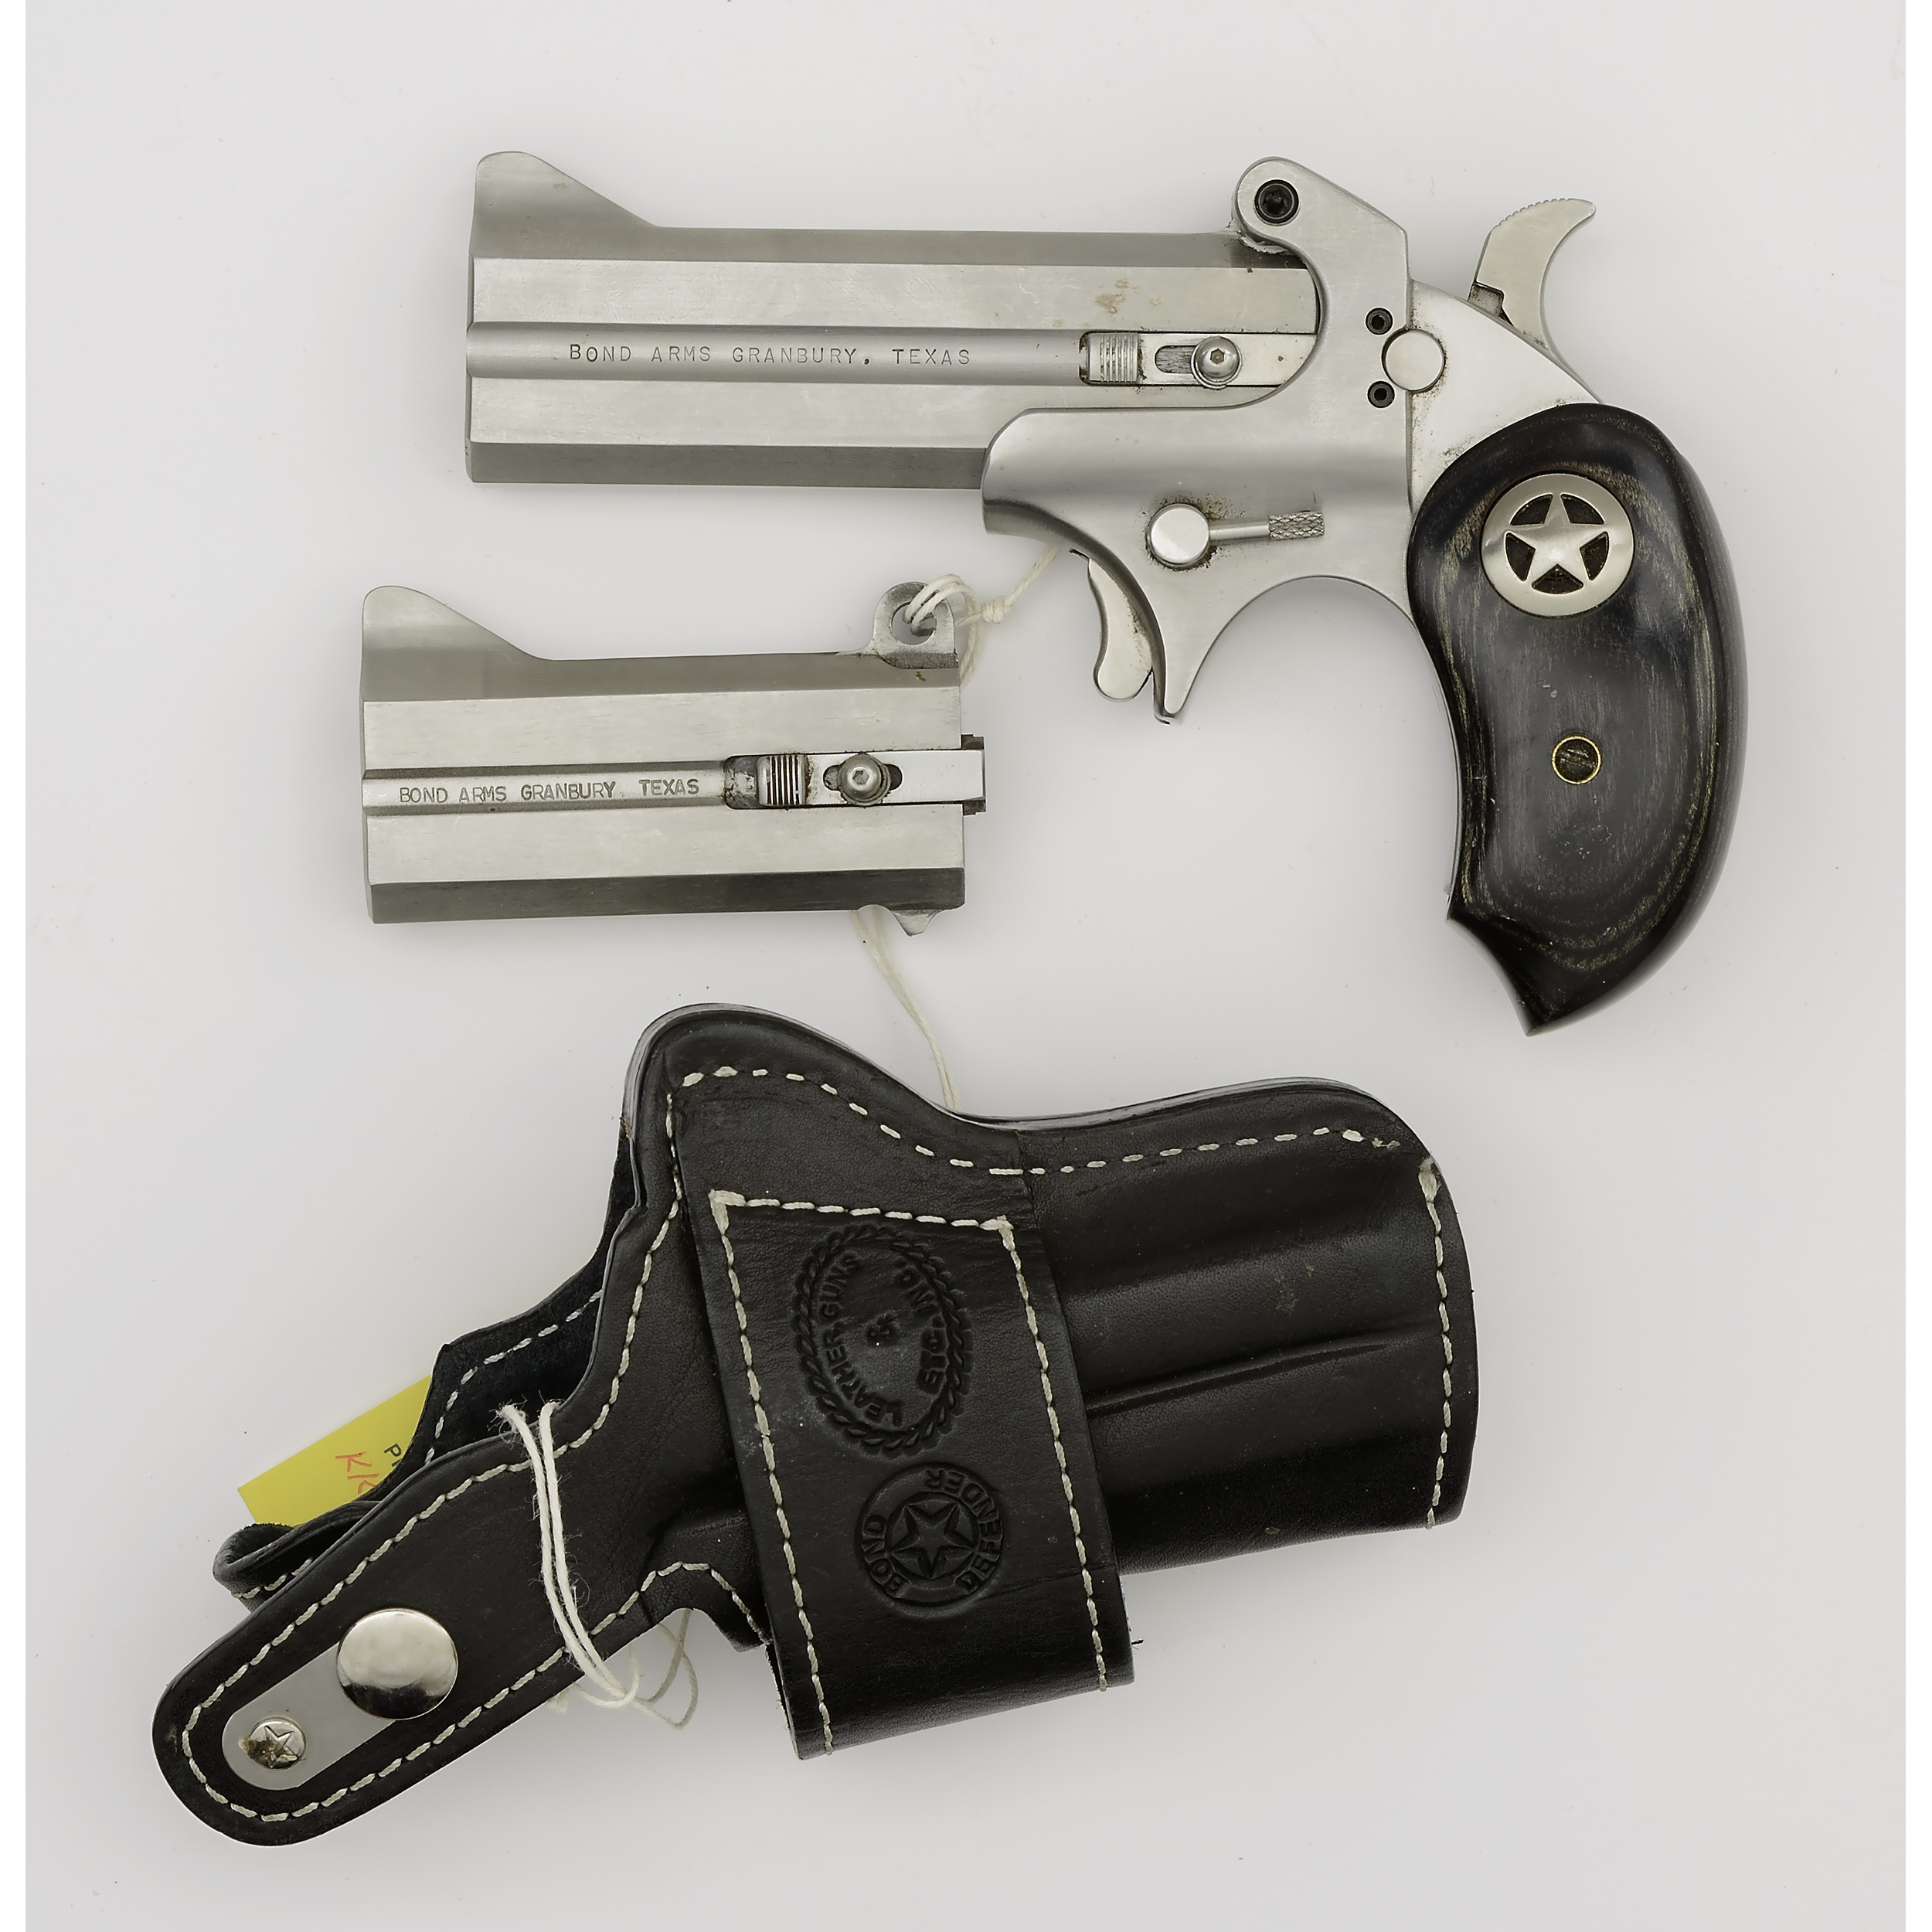 Bond Arms Ranger Ii With Extra Barrel And Leather Holster